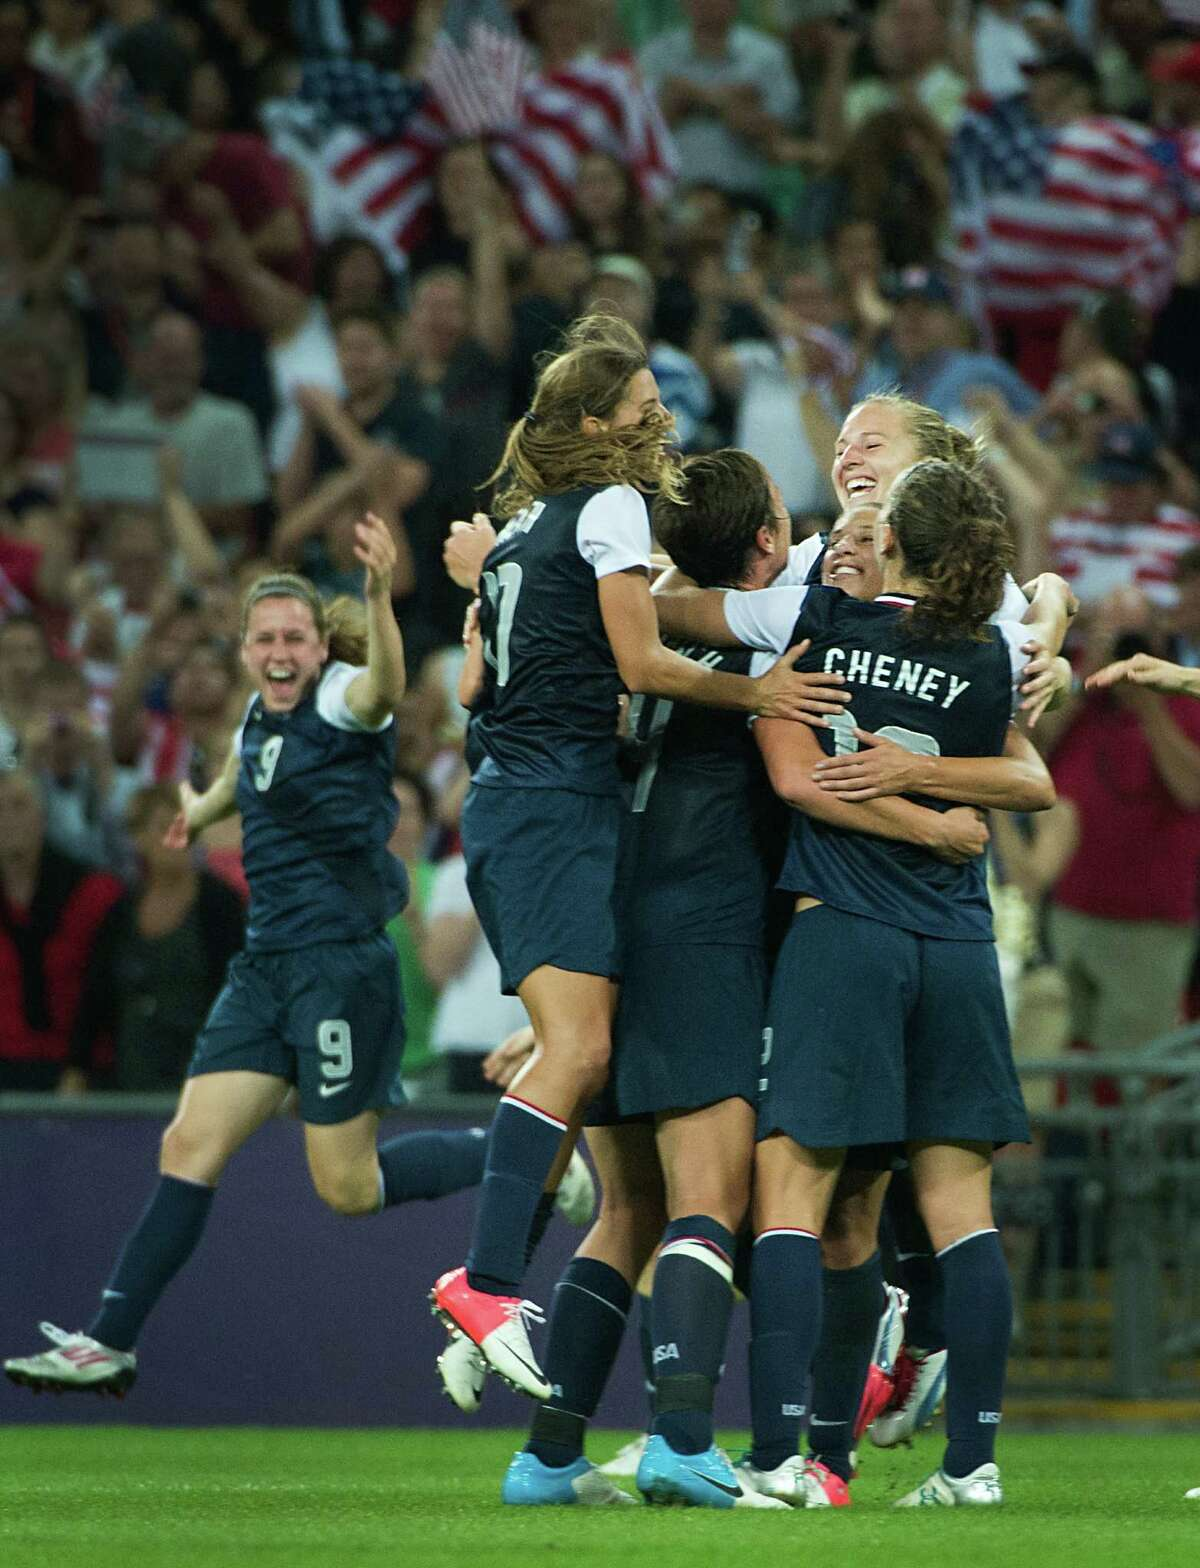 Tobin Heath (17), Sydney Leroux (11) Lauren Cheney (12), Amy Rodriguez (8) and United States' Heather O'Reilly (9) race in to mob Carli Lloyd, facing, of the United States after the women's soccer gold medal match against Japan at the 2012 London Olympics on Thursday, Aug. 9, 2012. The USA won the game 2-1 to claim the gold medal. Lloyd scored both goals for the Americans. ( Smiley N. Pool / Houston Chronicle )